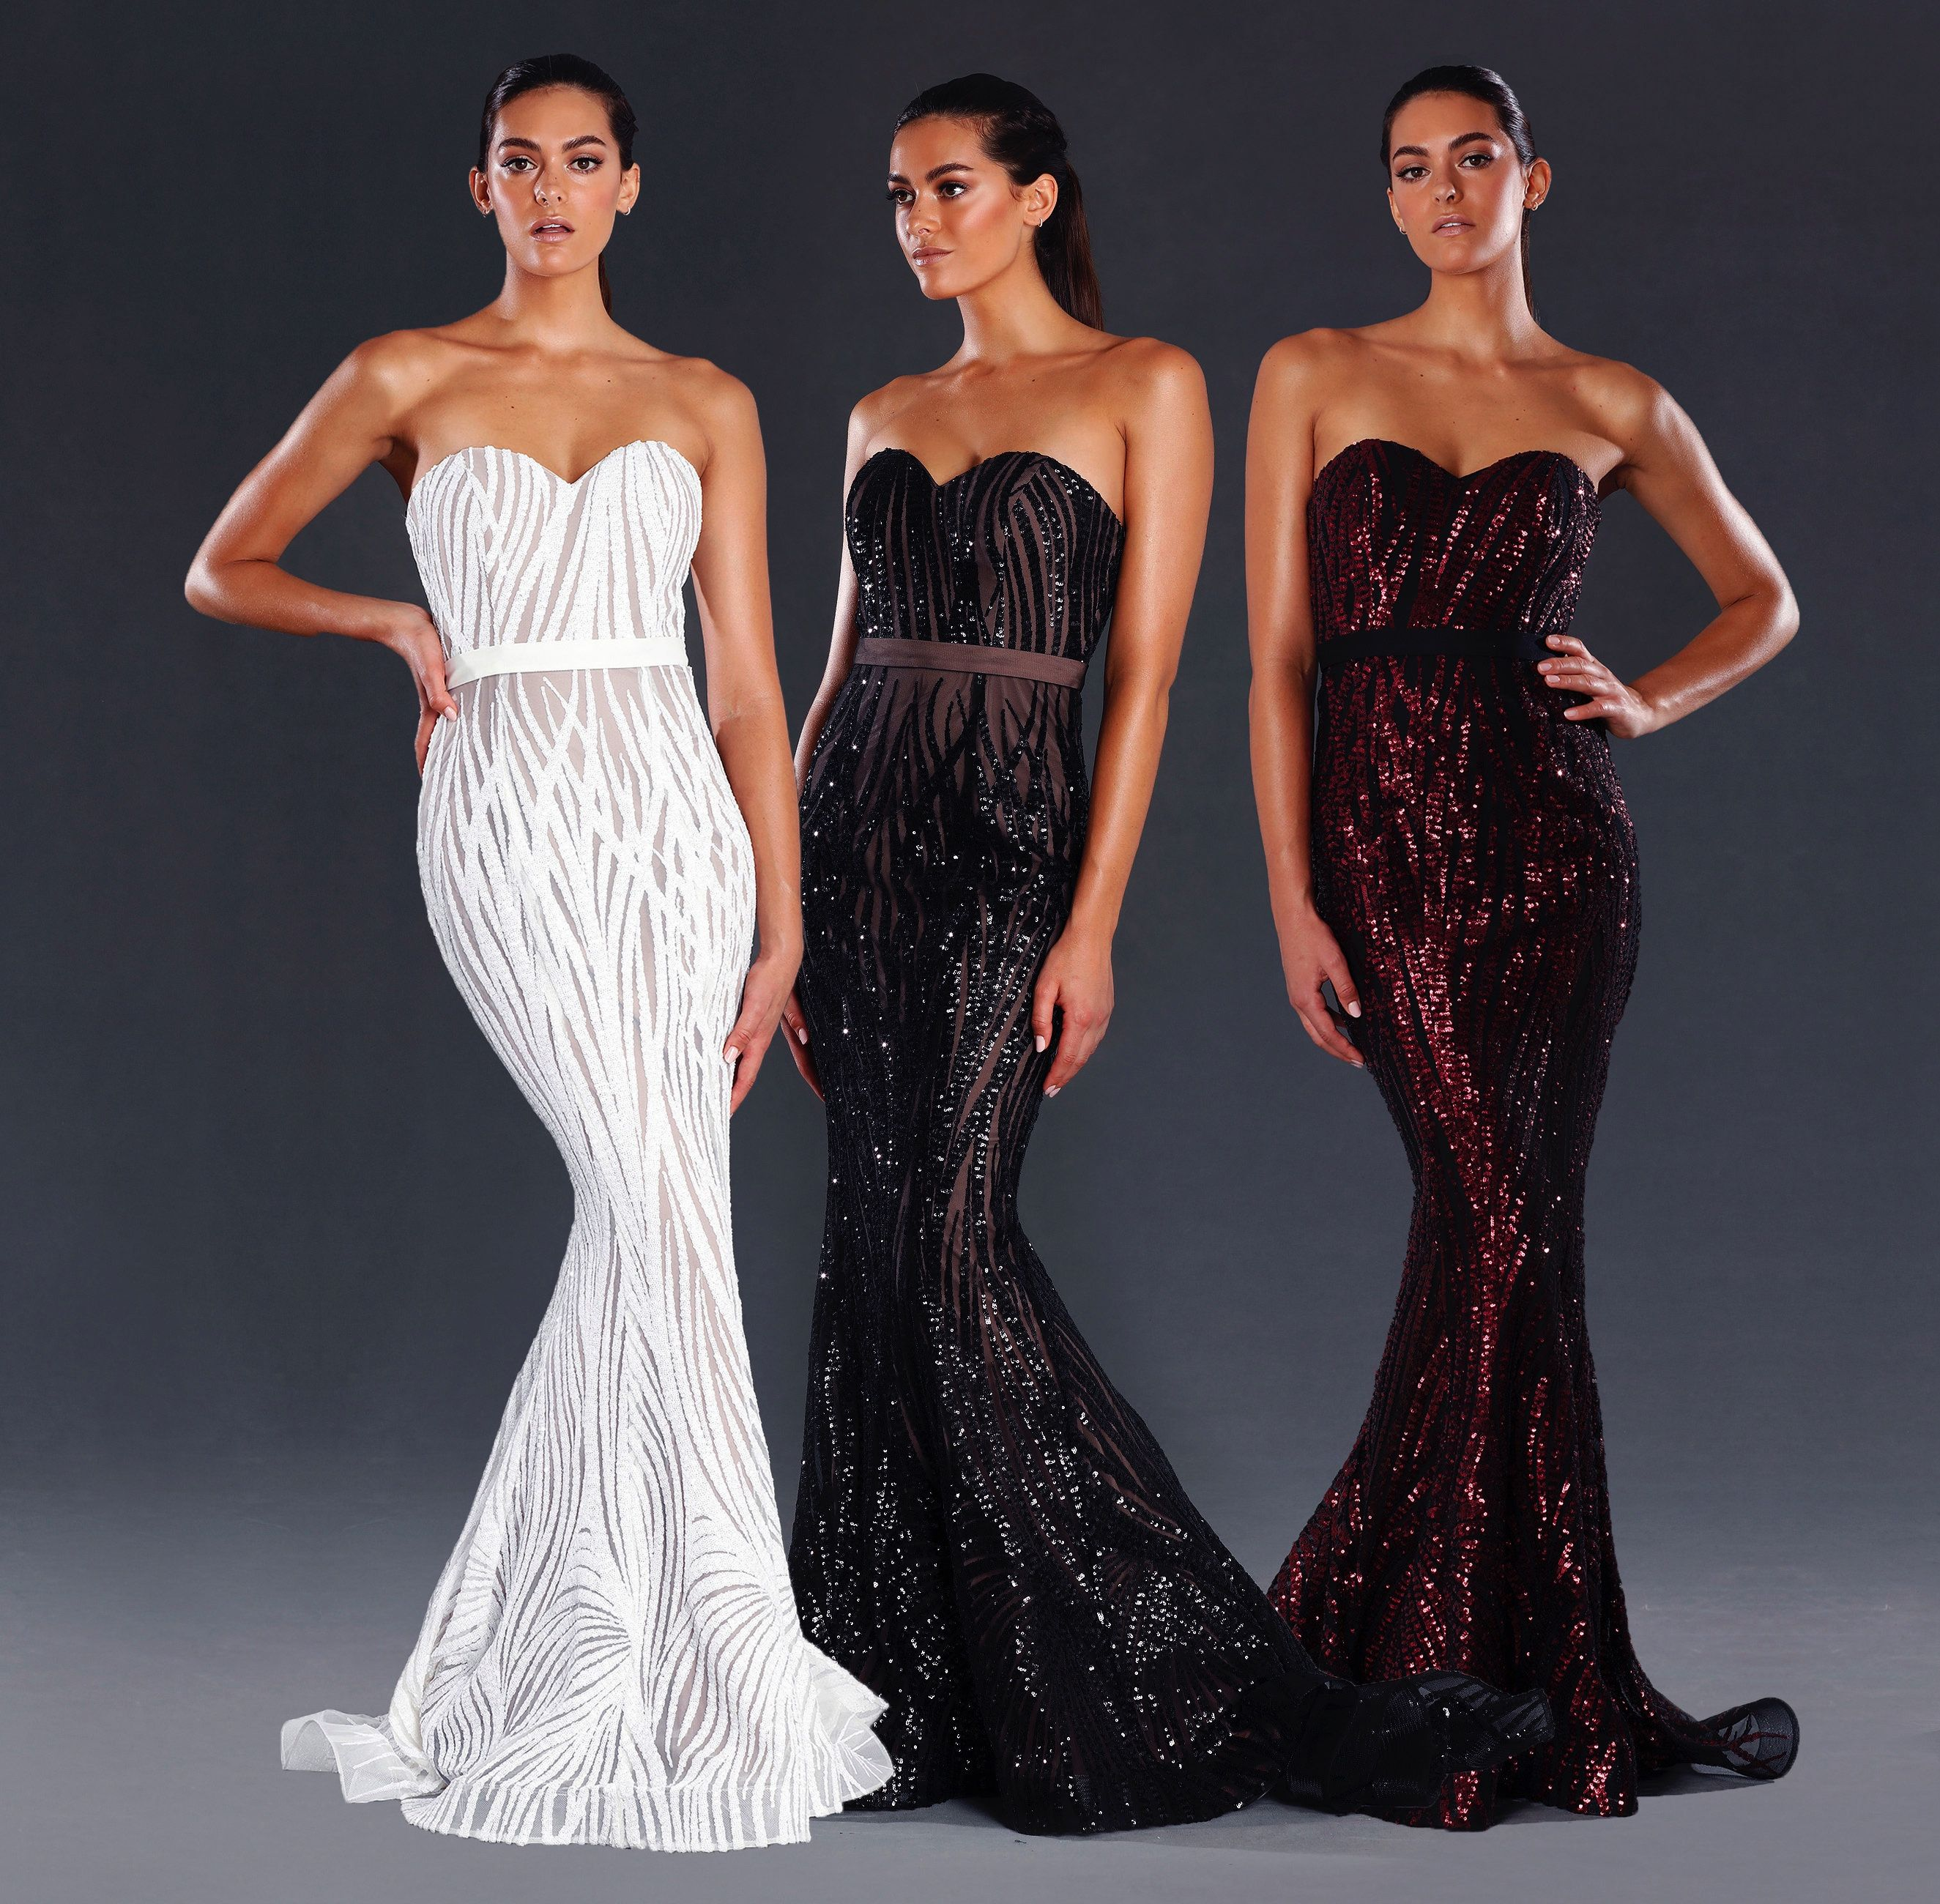 Jx sequins red black and sequin evening dresses